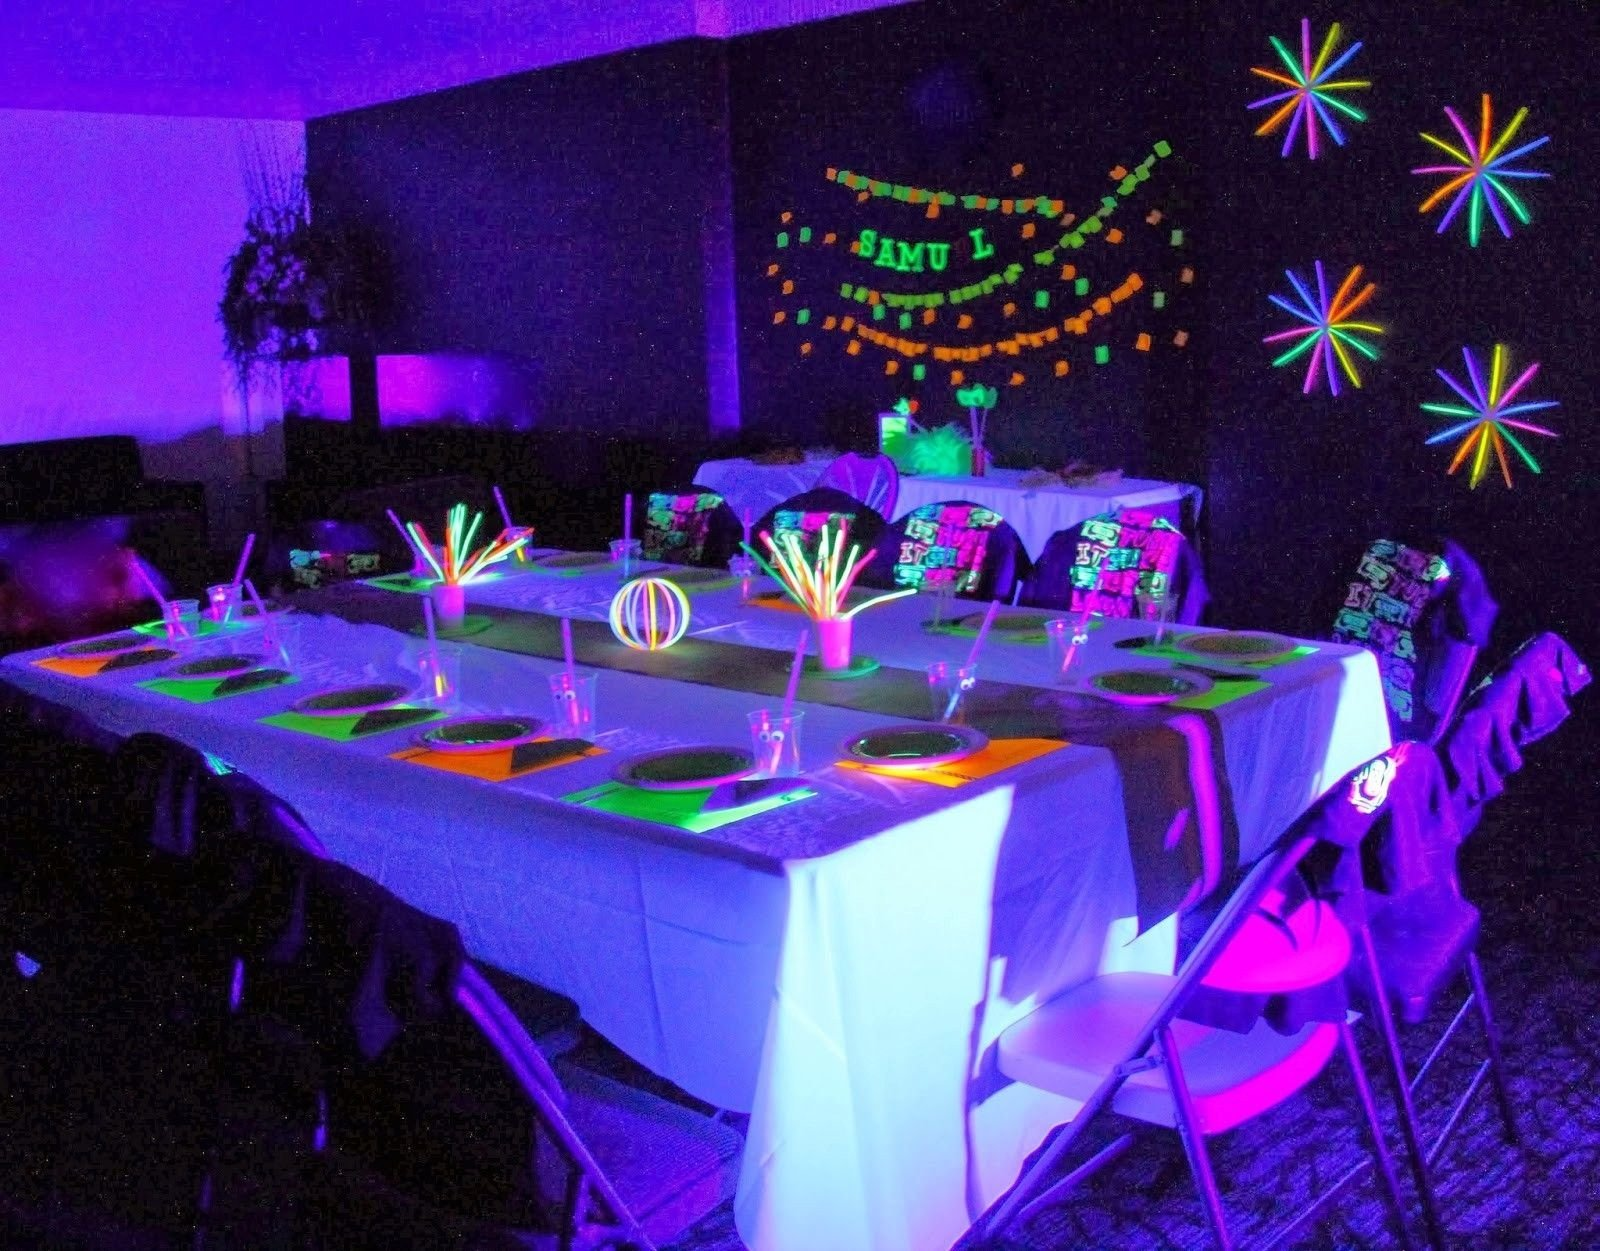 10 Elegant Glow In Dark Party Ideas glow in the dark party ideas for teenagers 1600x1251 cam 2020